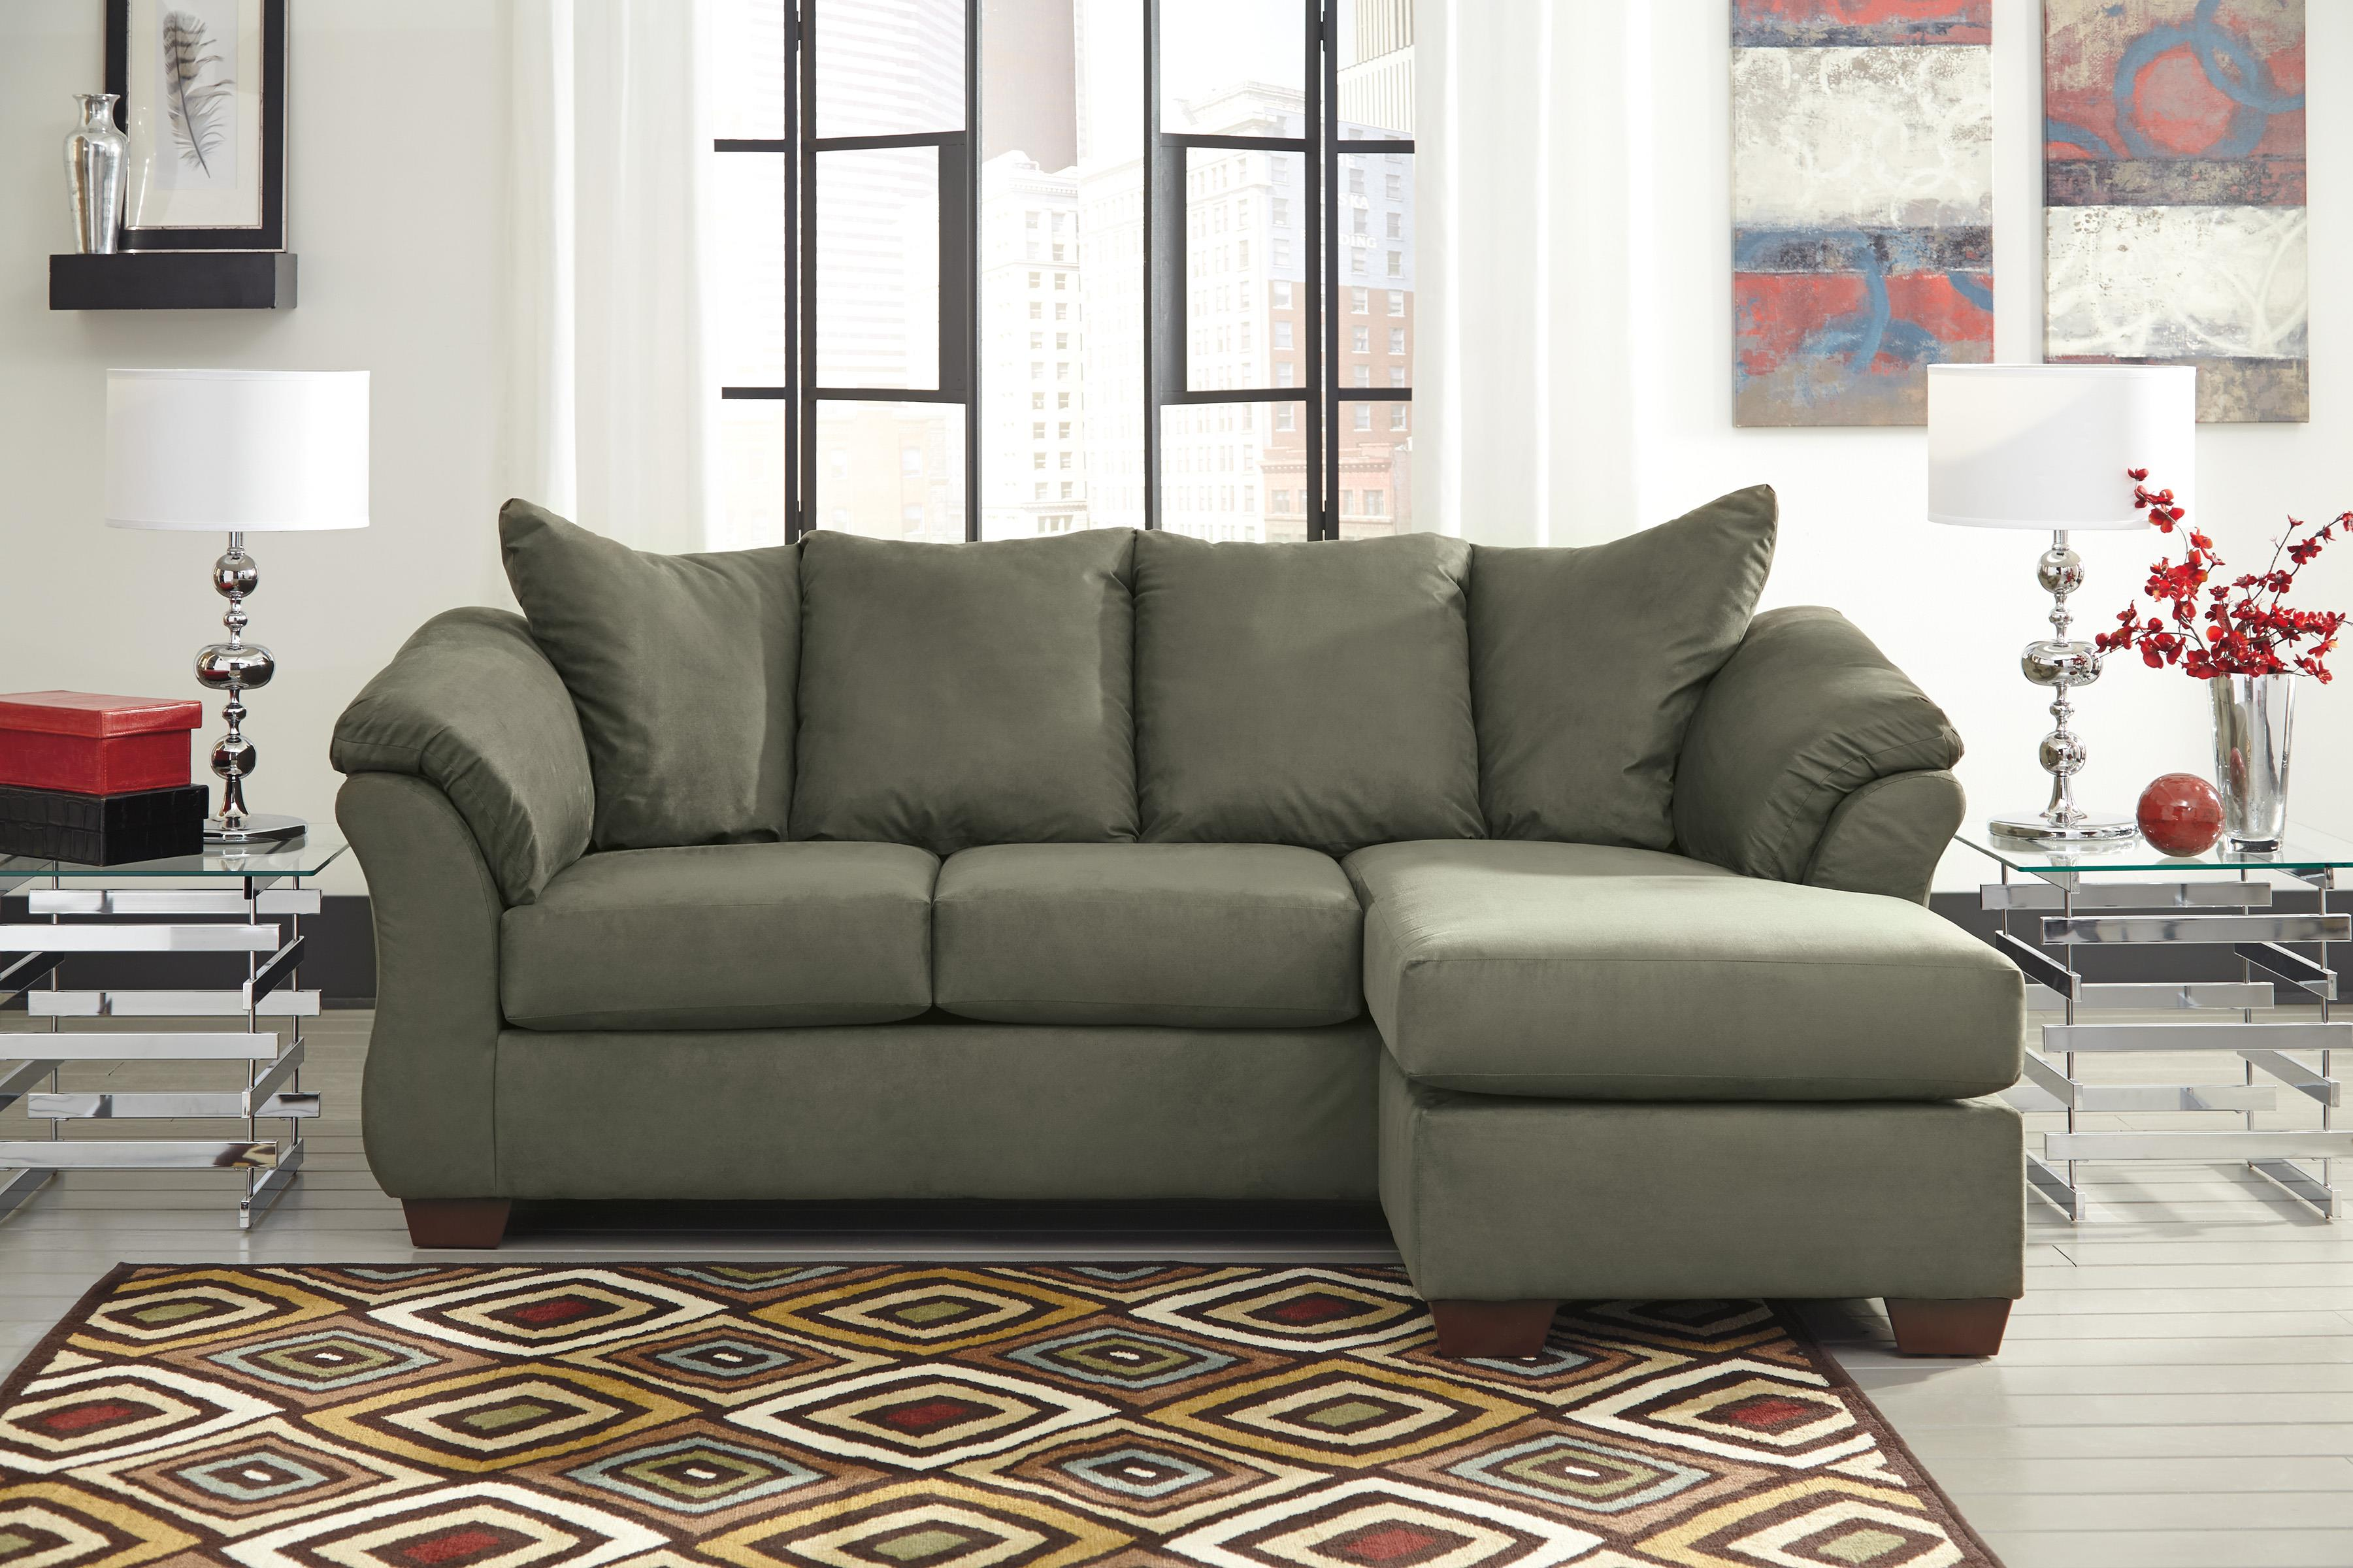 Ashley signature design darcy sage 7500318 contemporary for Ashley sofa with chaise